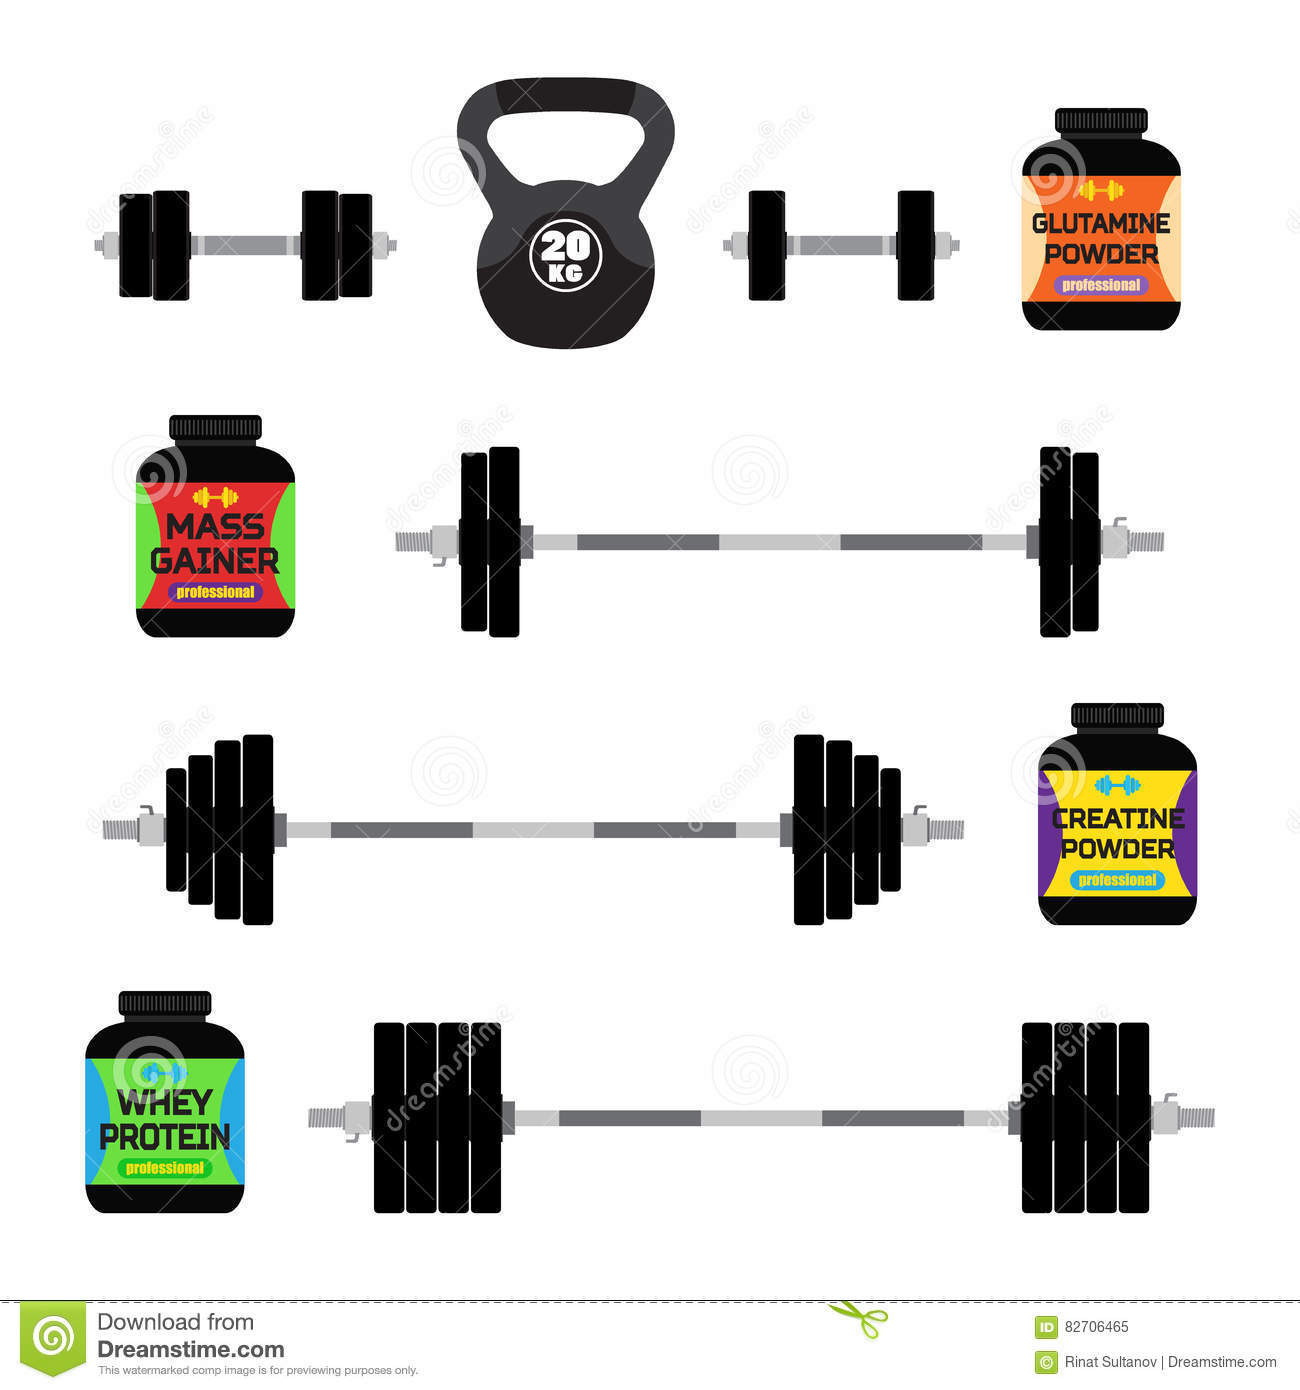 Sports Nutrition, Supplements, Barbells, Whey Protein